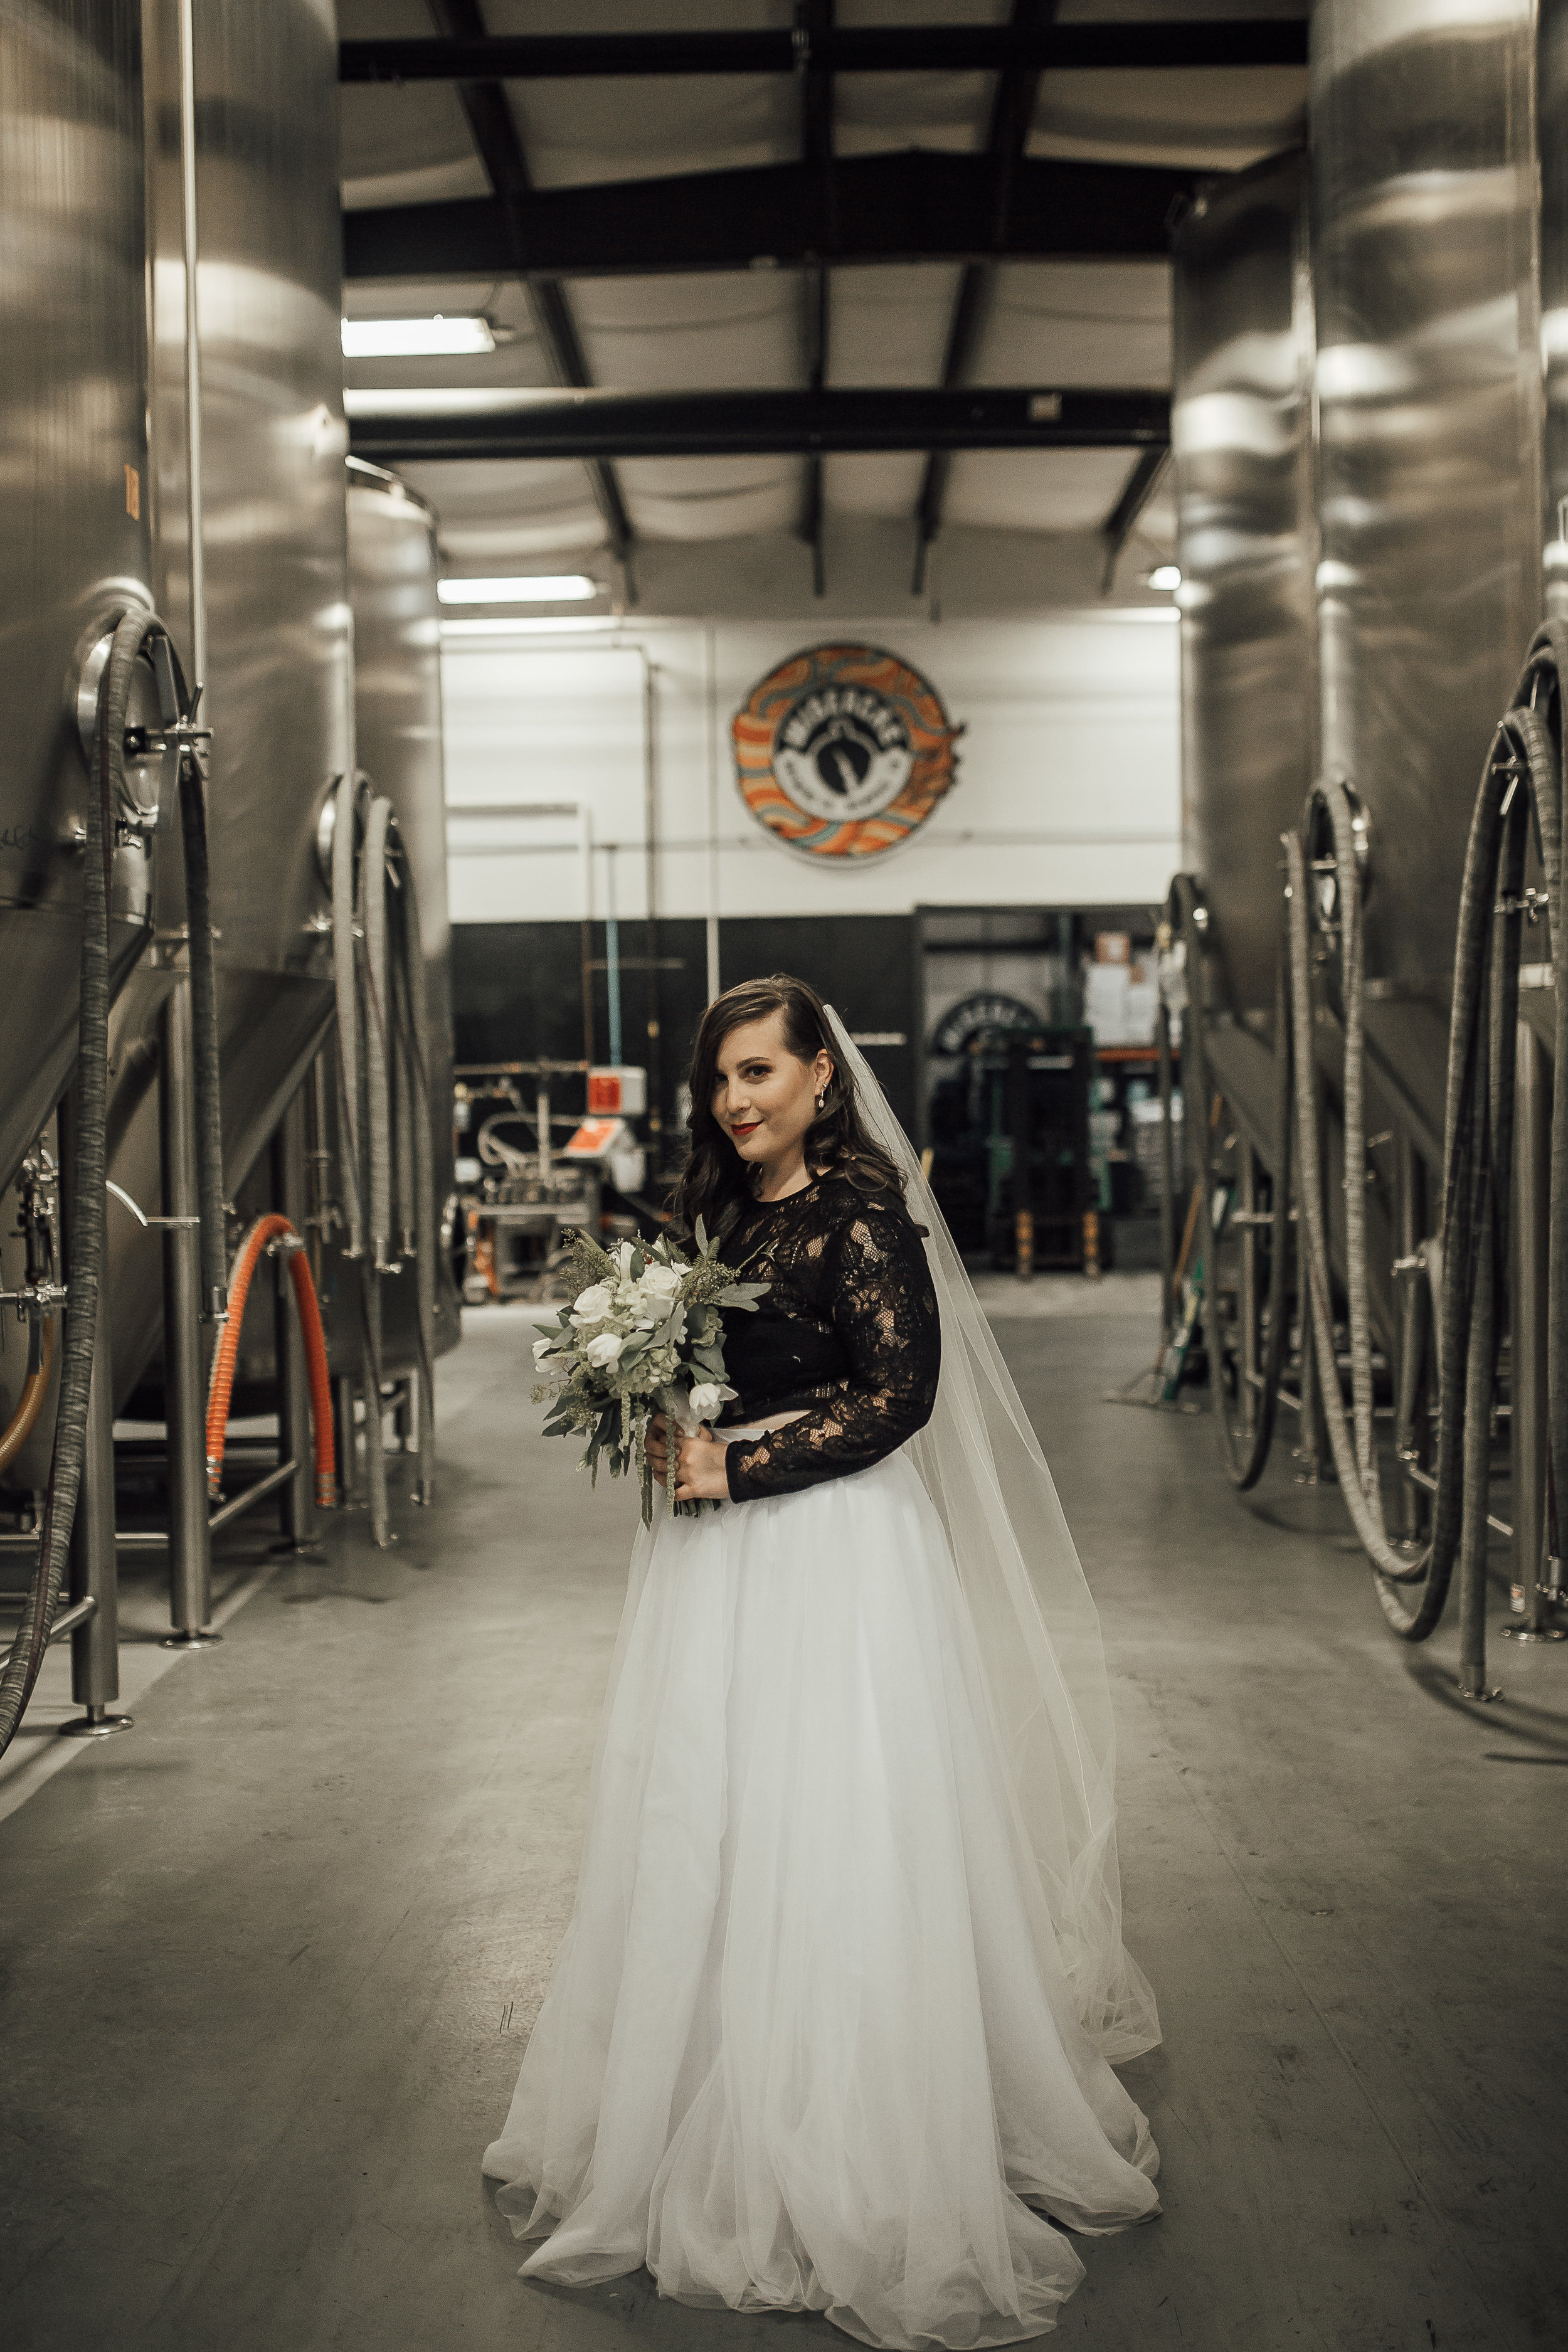 memphis-wedding-photographer-wiseacre-brewing-cassie-cook-photography-51.jpg